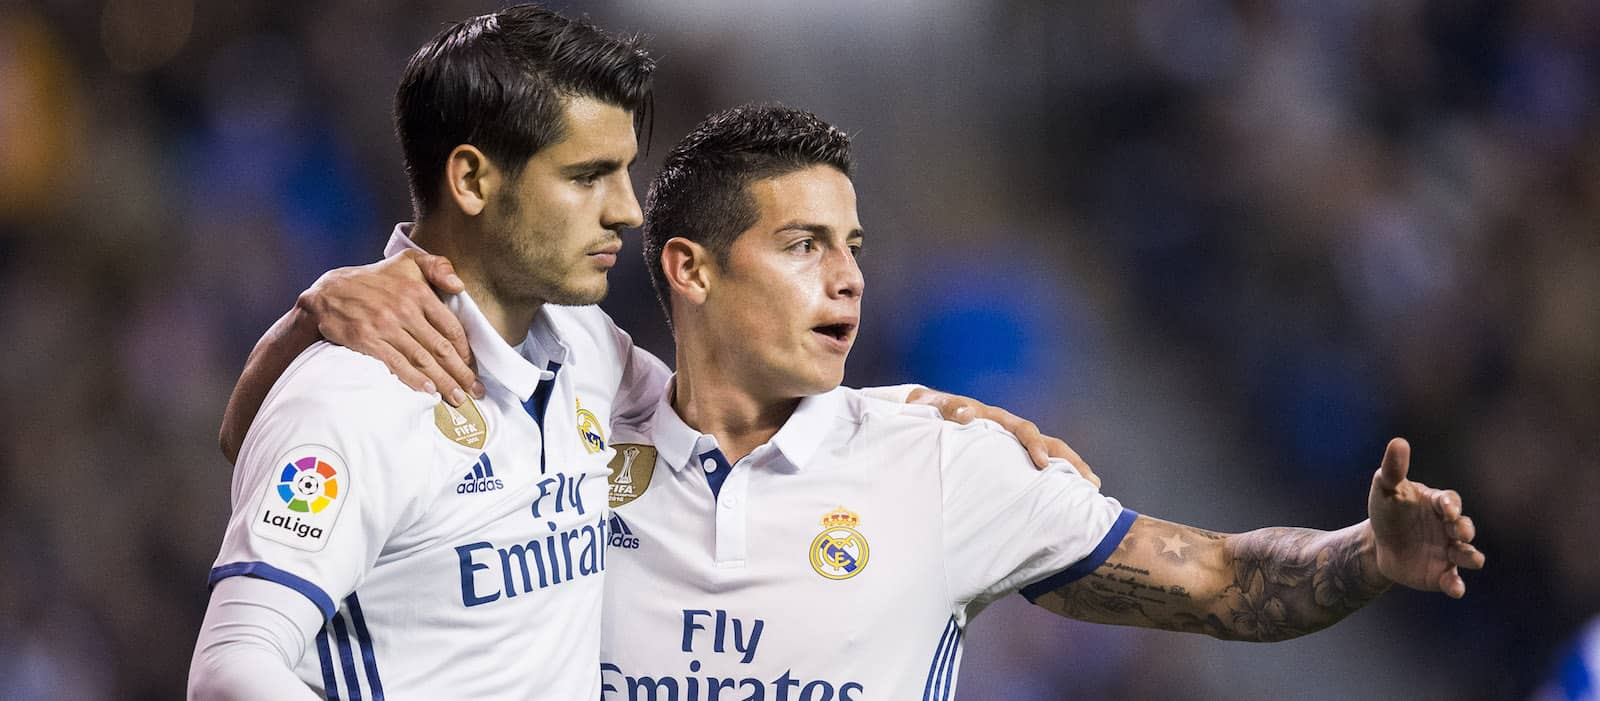 Radamel Falcao offers Real Madrid's James Rodriguez advice ahead of potential Manchester United move